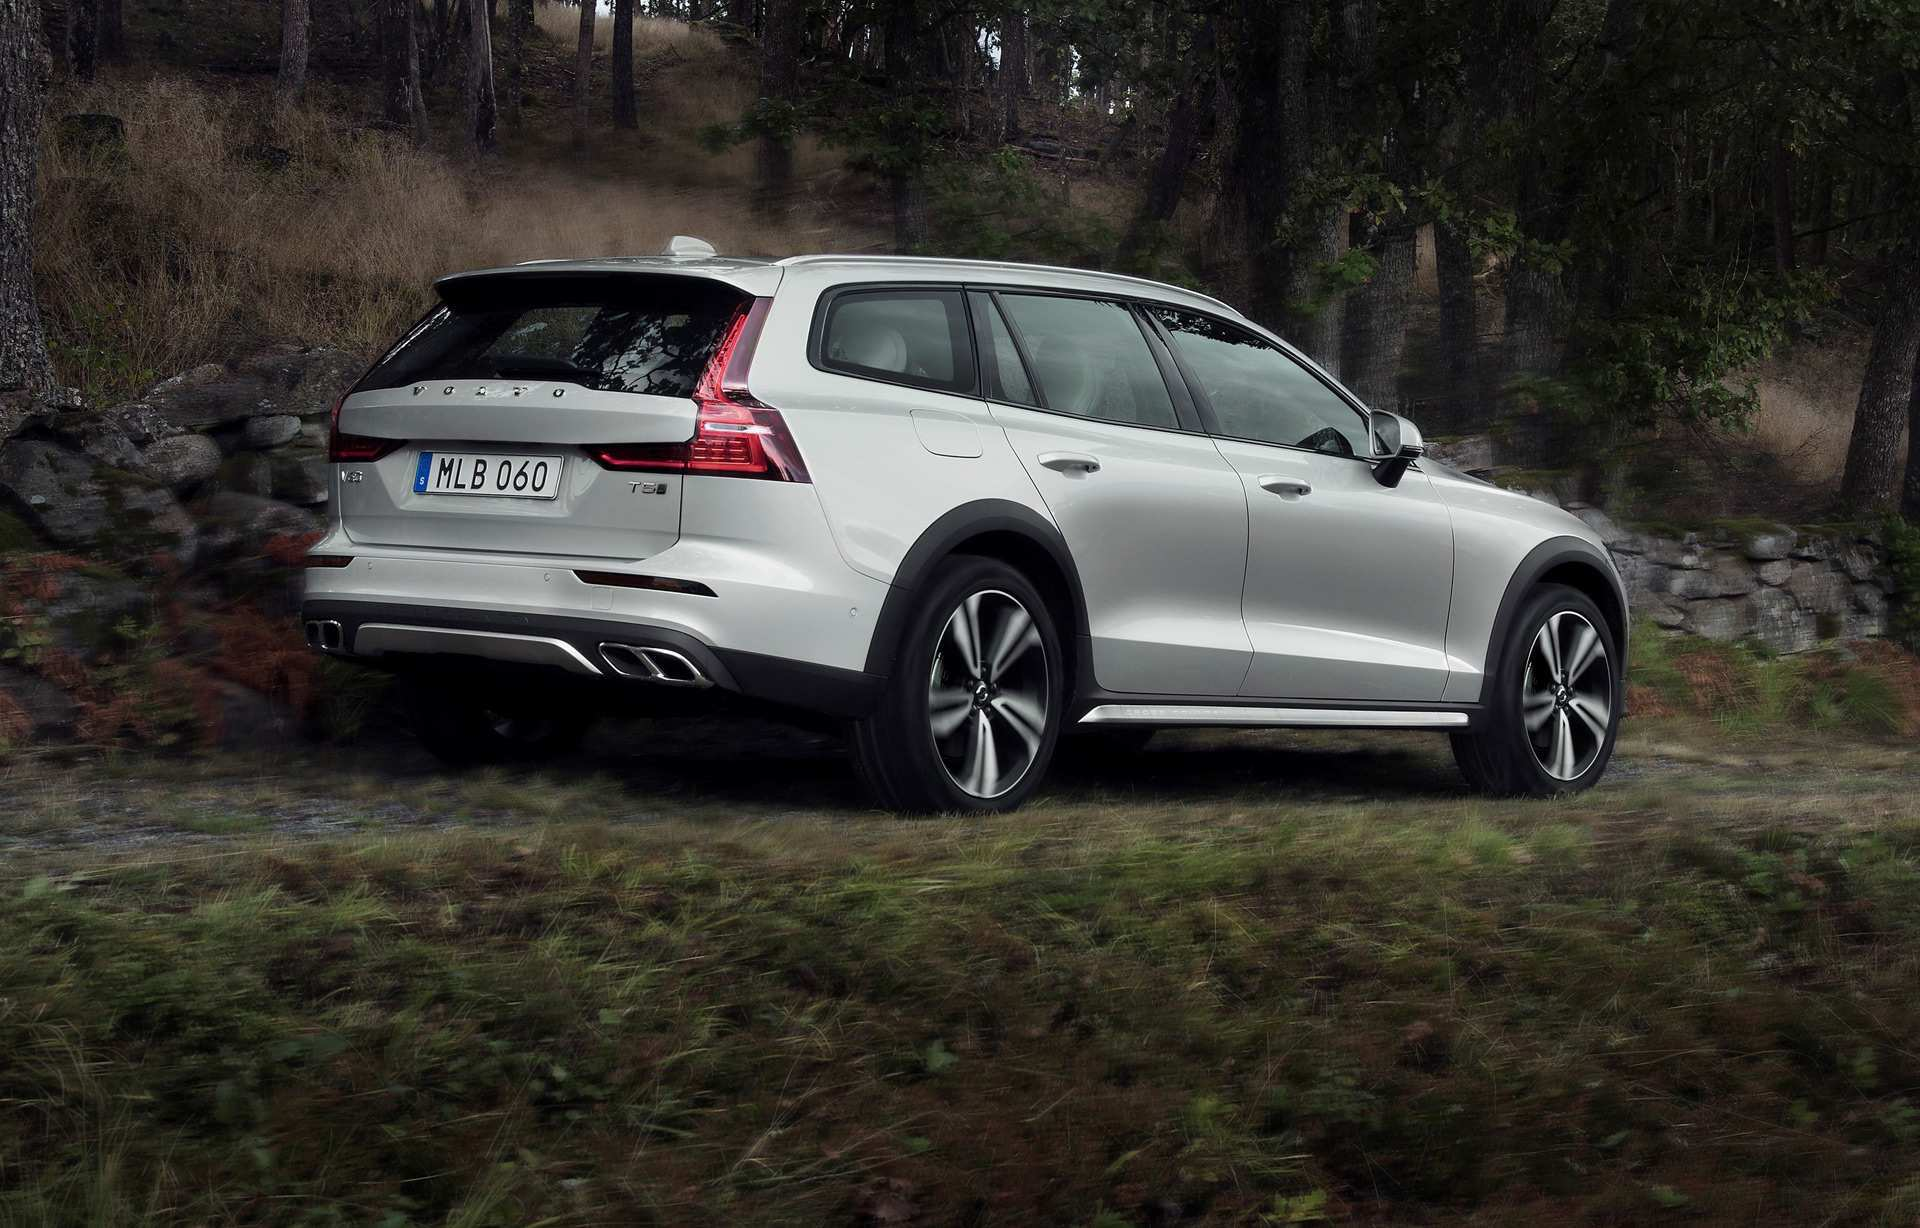 65 Great Volvo V60 Cross Country 2020 Performance and New Engine by Volvo V60 Cross Country 2020